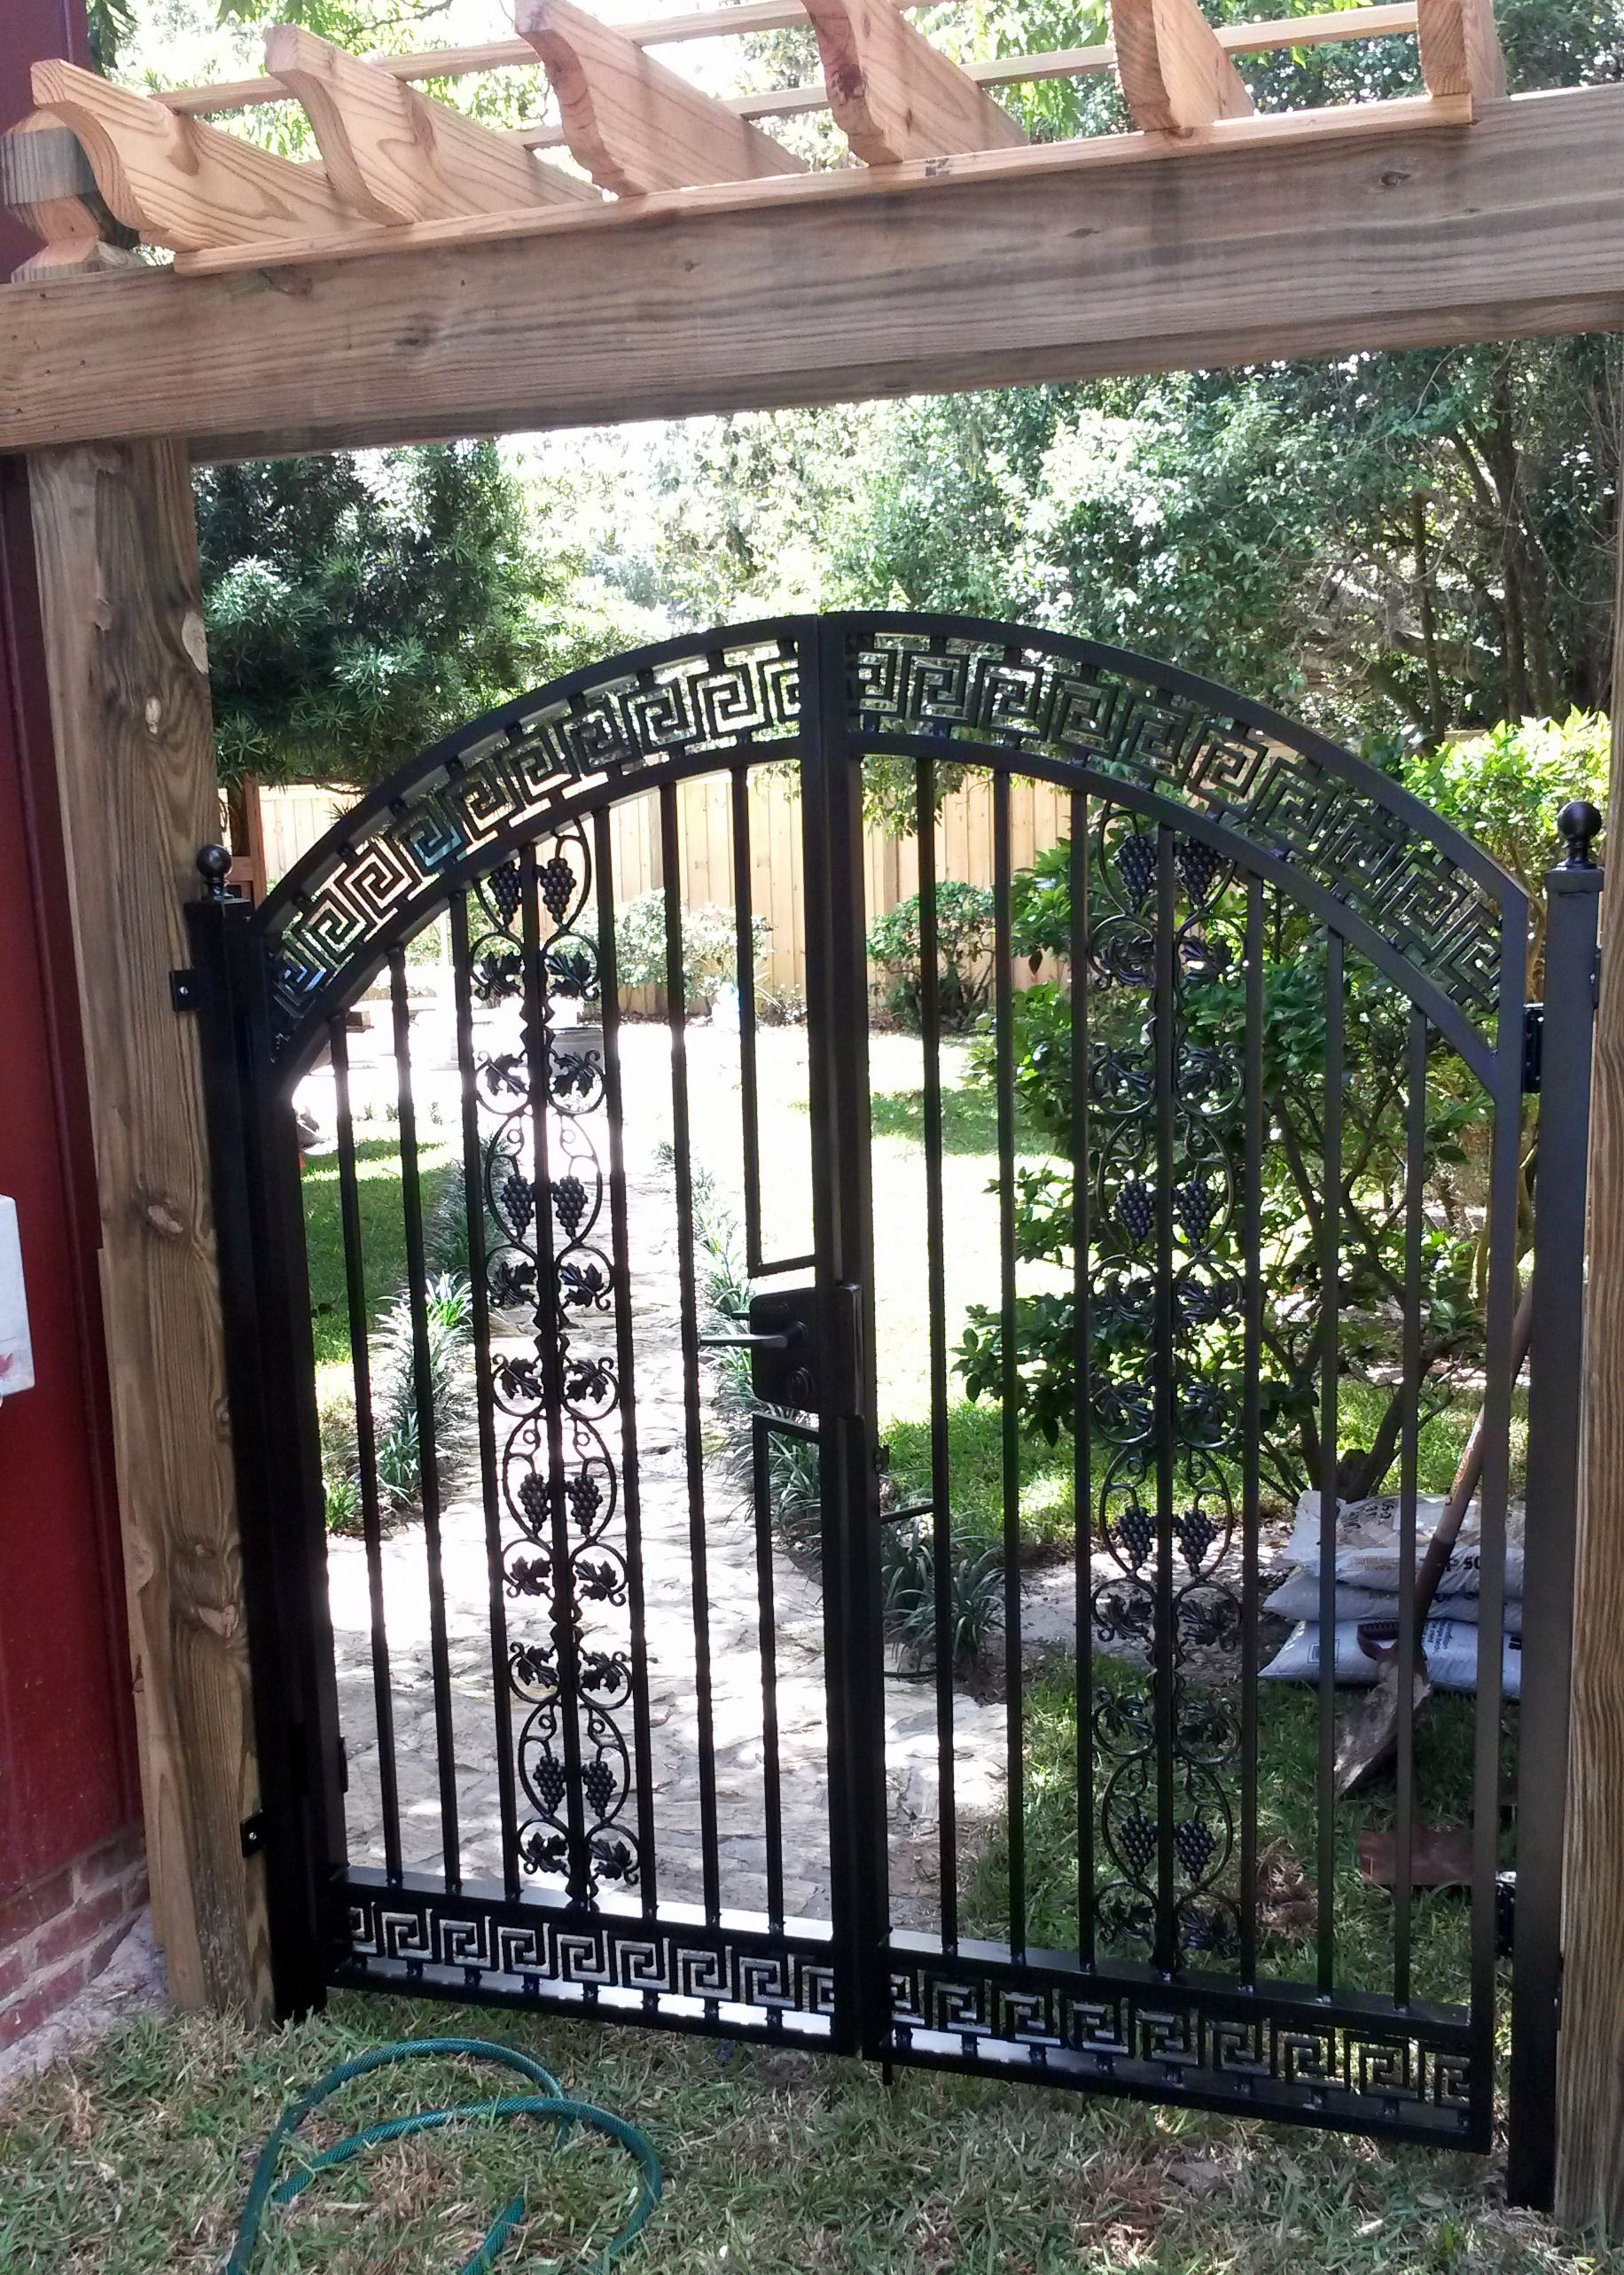 This Is An Asian Style Garden Gate. The Gate Has Self Closing Hinges And A